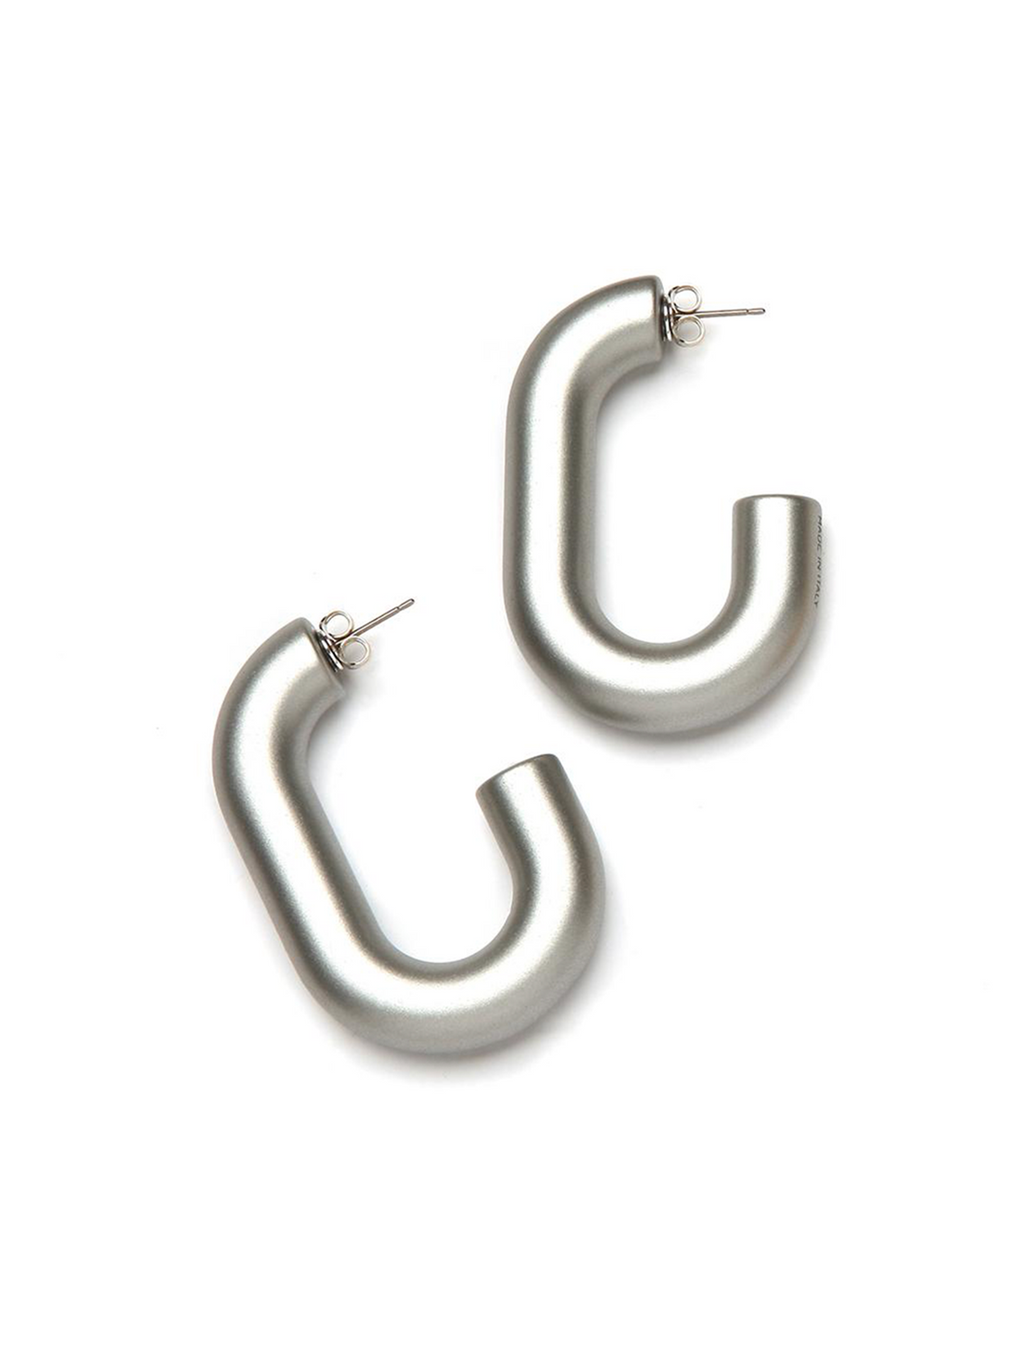 PONO Margo Barile Resin Earring, Silver